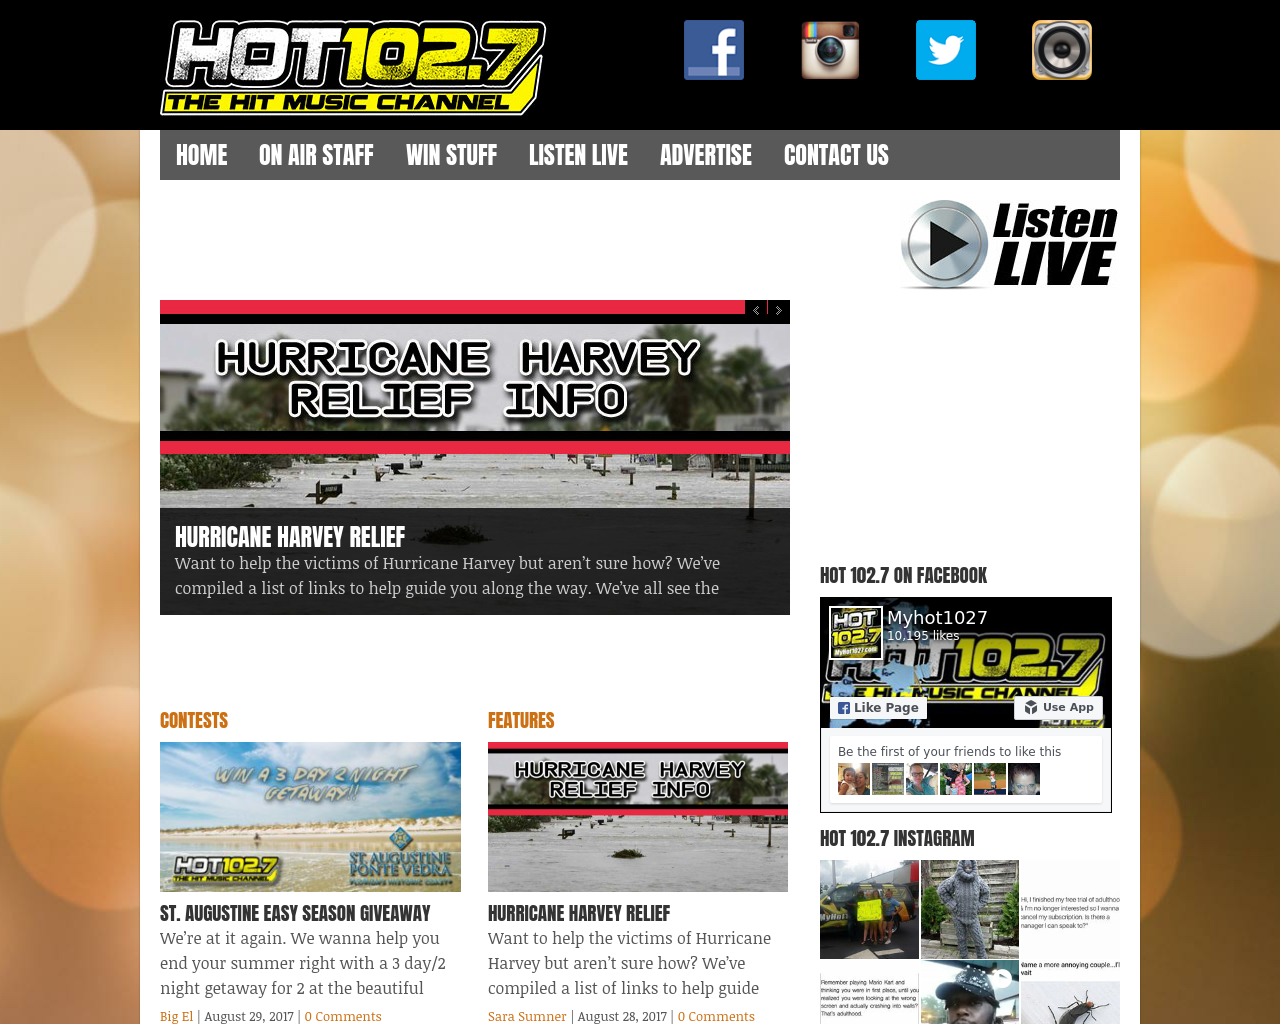 HOT102.7-THE-HIT-MUSIC-CHANNEL-Advertising-Reviews-Pricing